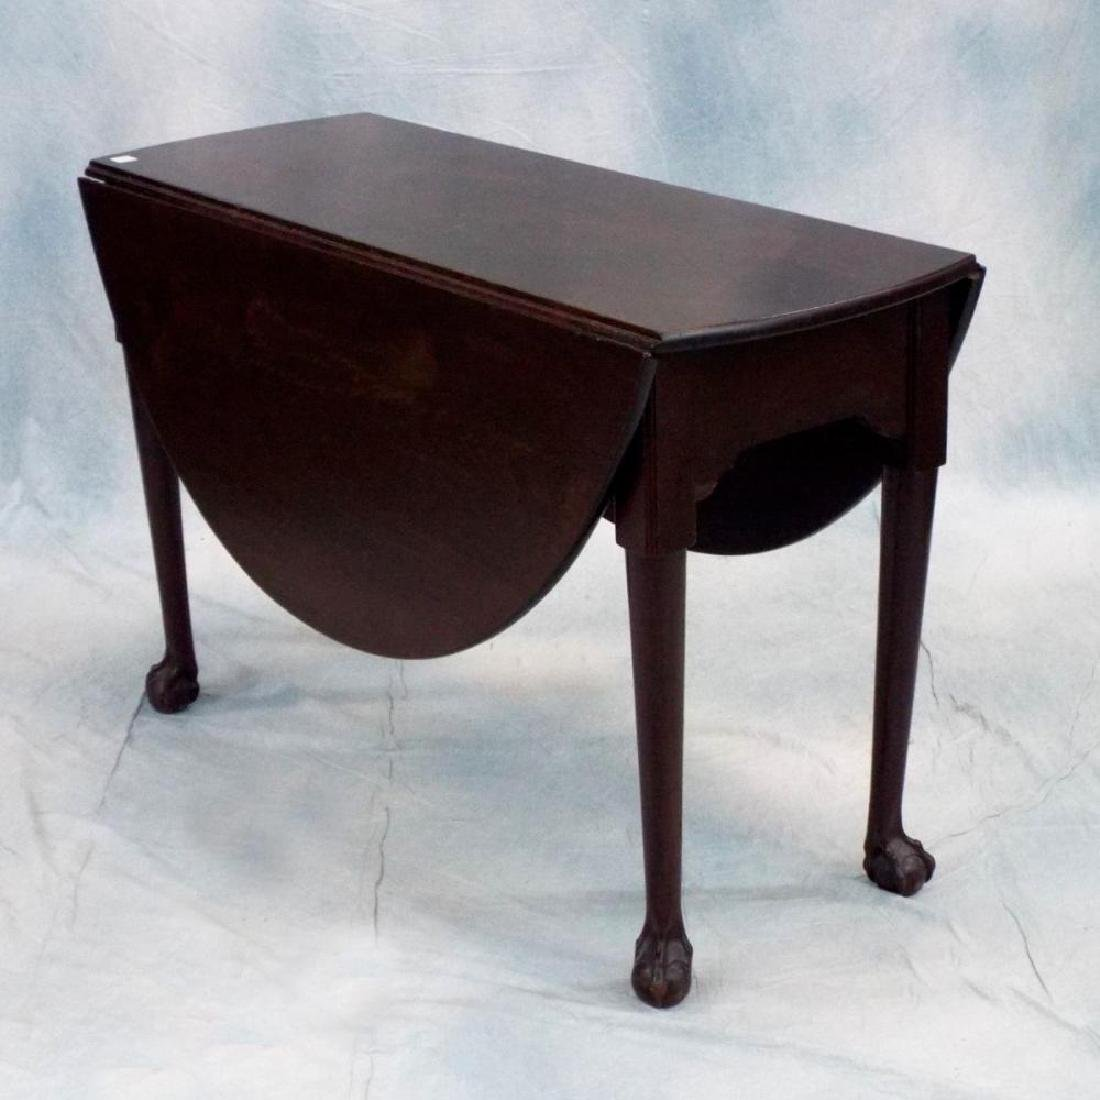 Antique 19th C Solid Mahogany Drop Leaf Table w/Ball &